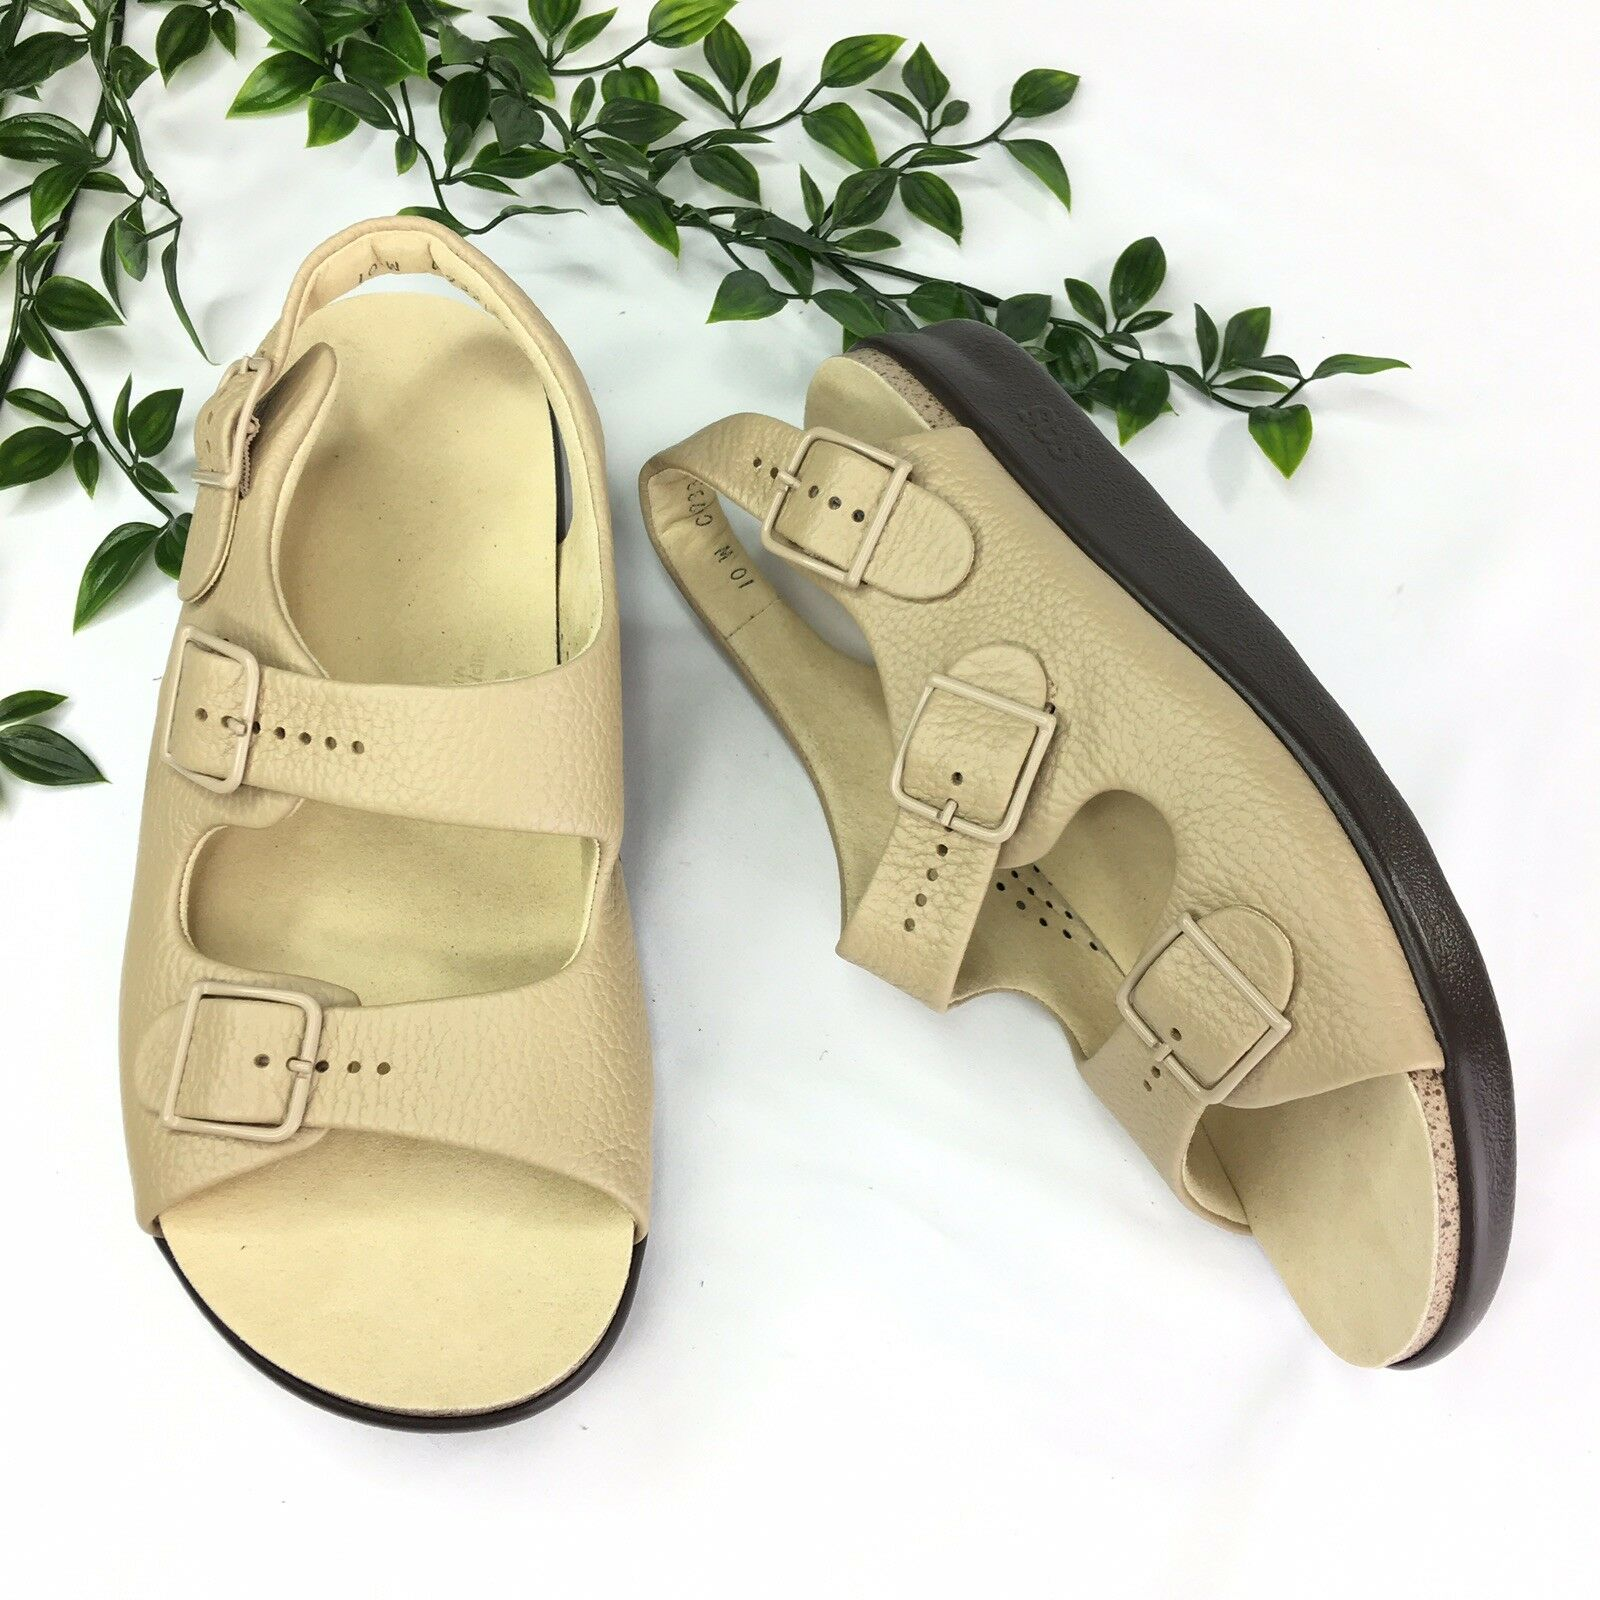 SAS Womens 10 W Relaxed Beige Leather Sandals Adjustable 2 Strap Slingback Wide